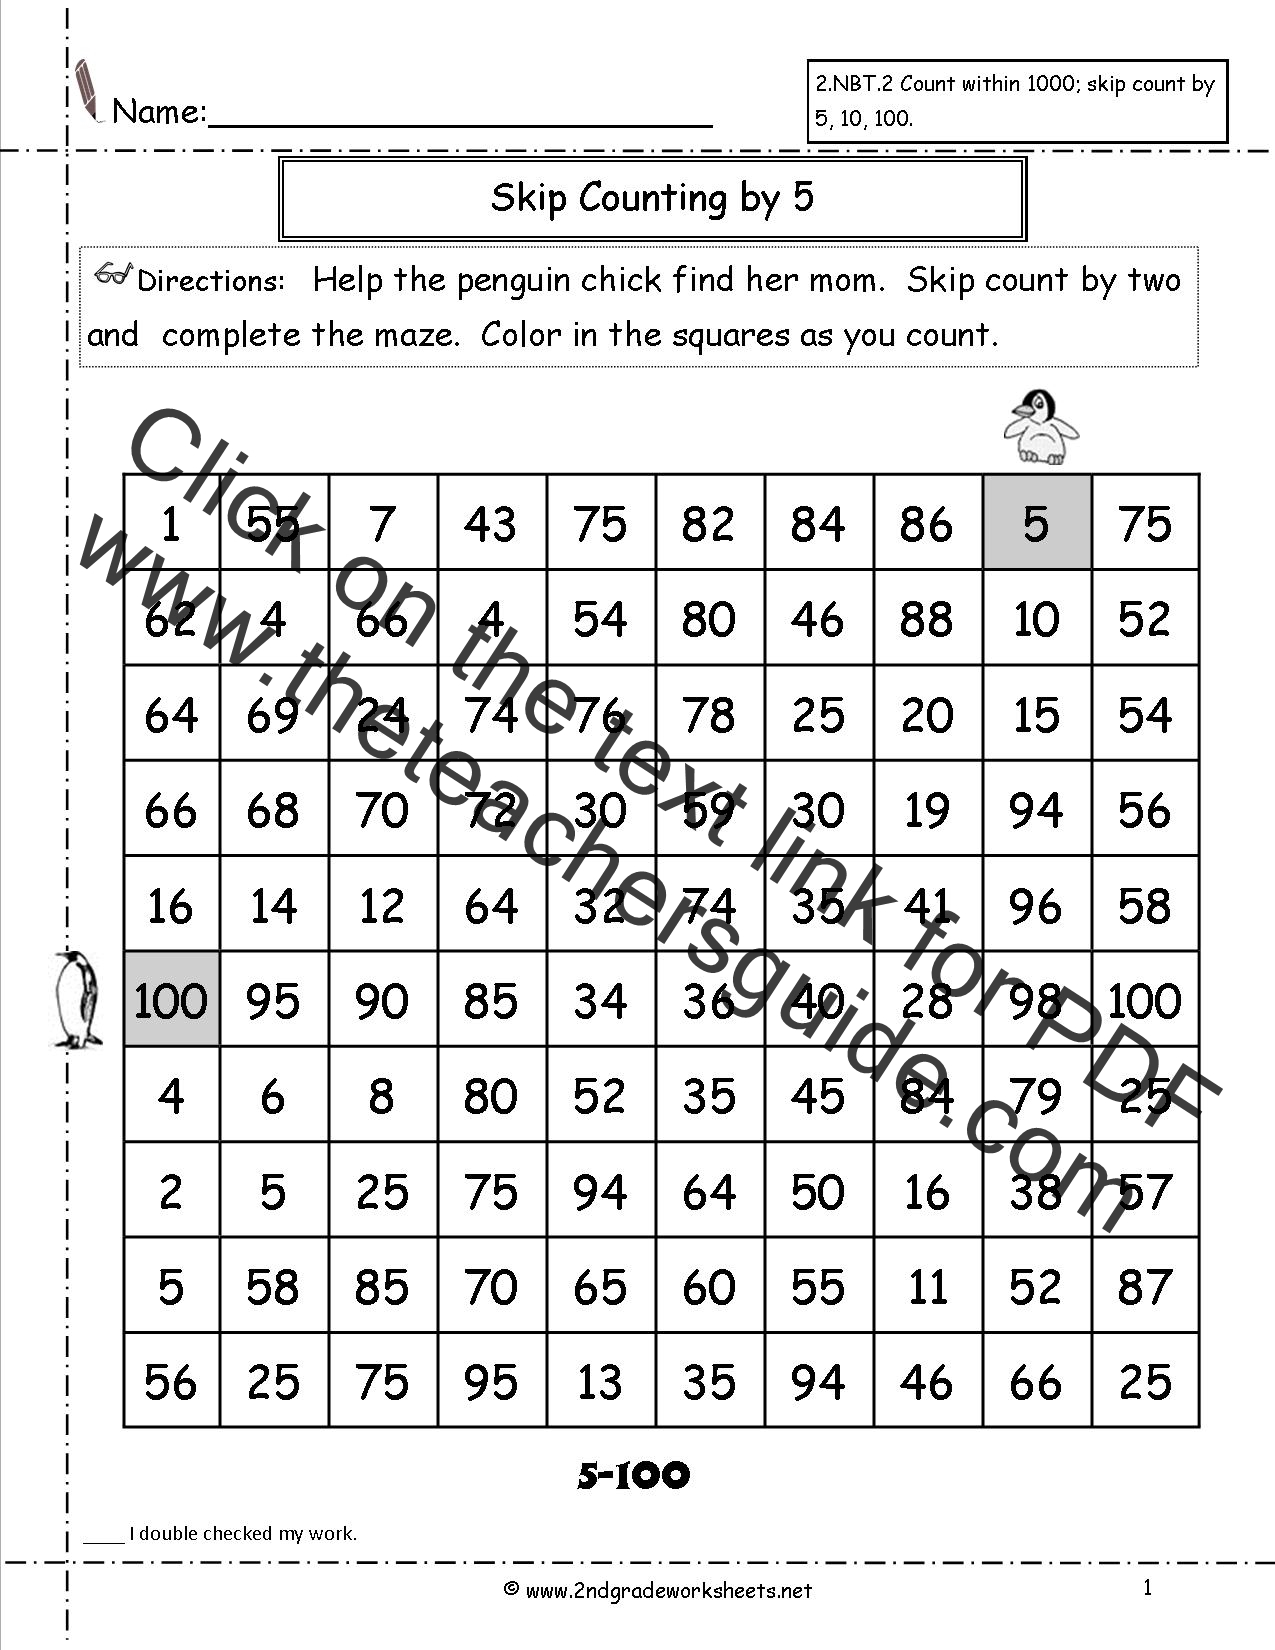 Skip Counting Worksheet: 2s, 5s, 10s | Skip counting, Math and ...